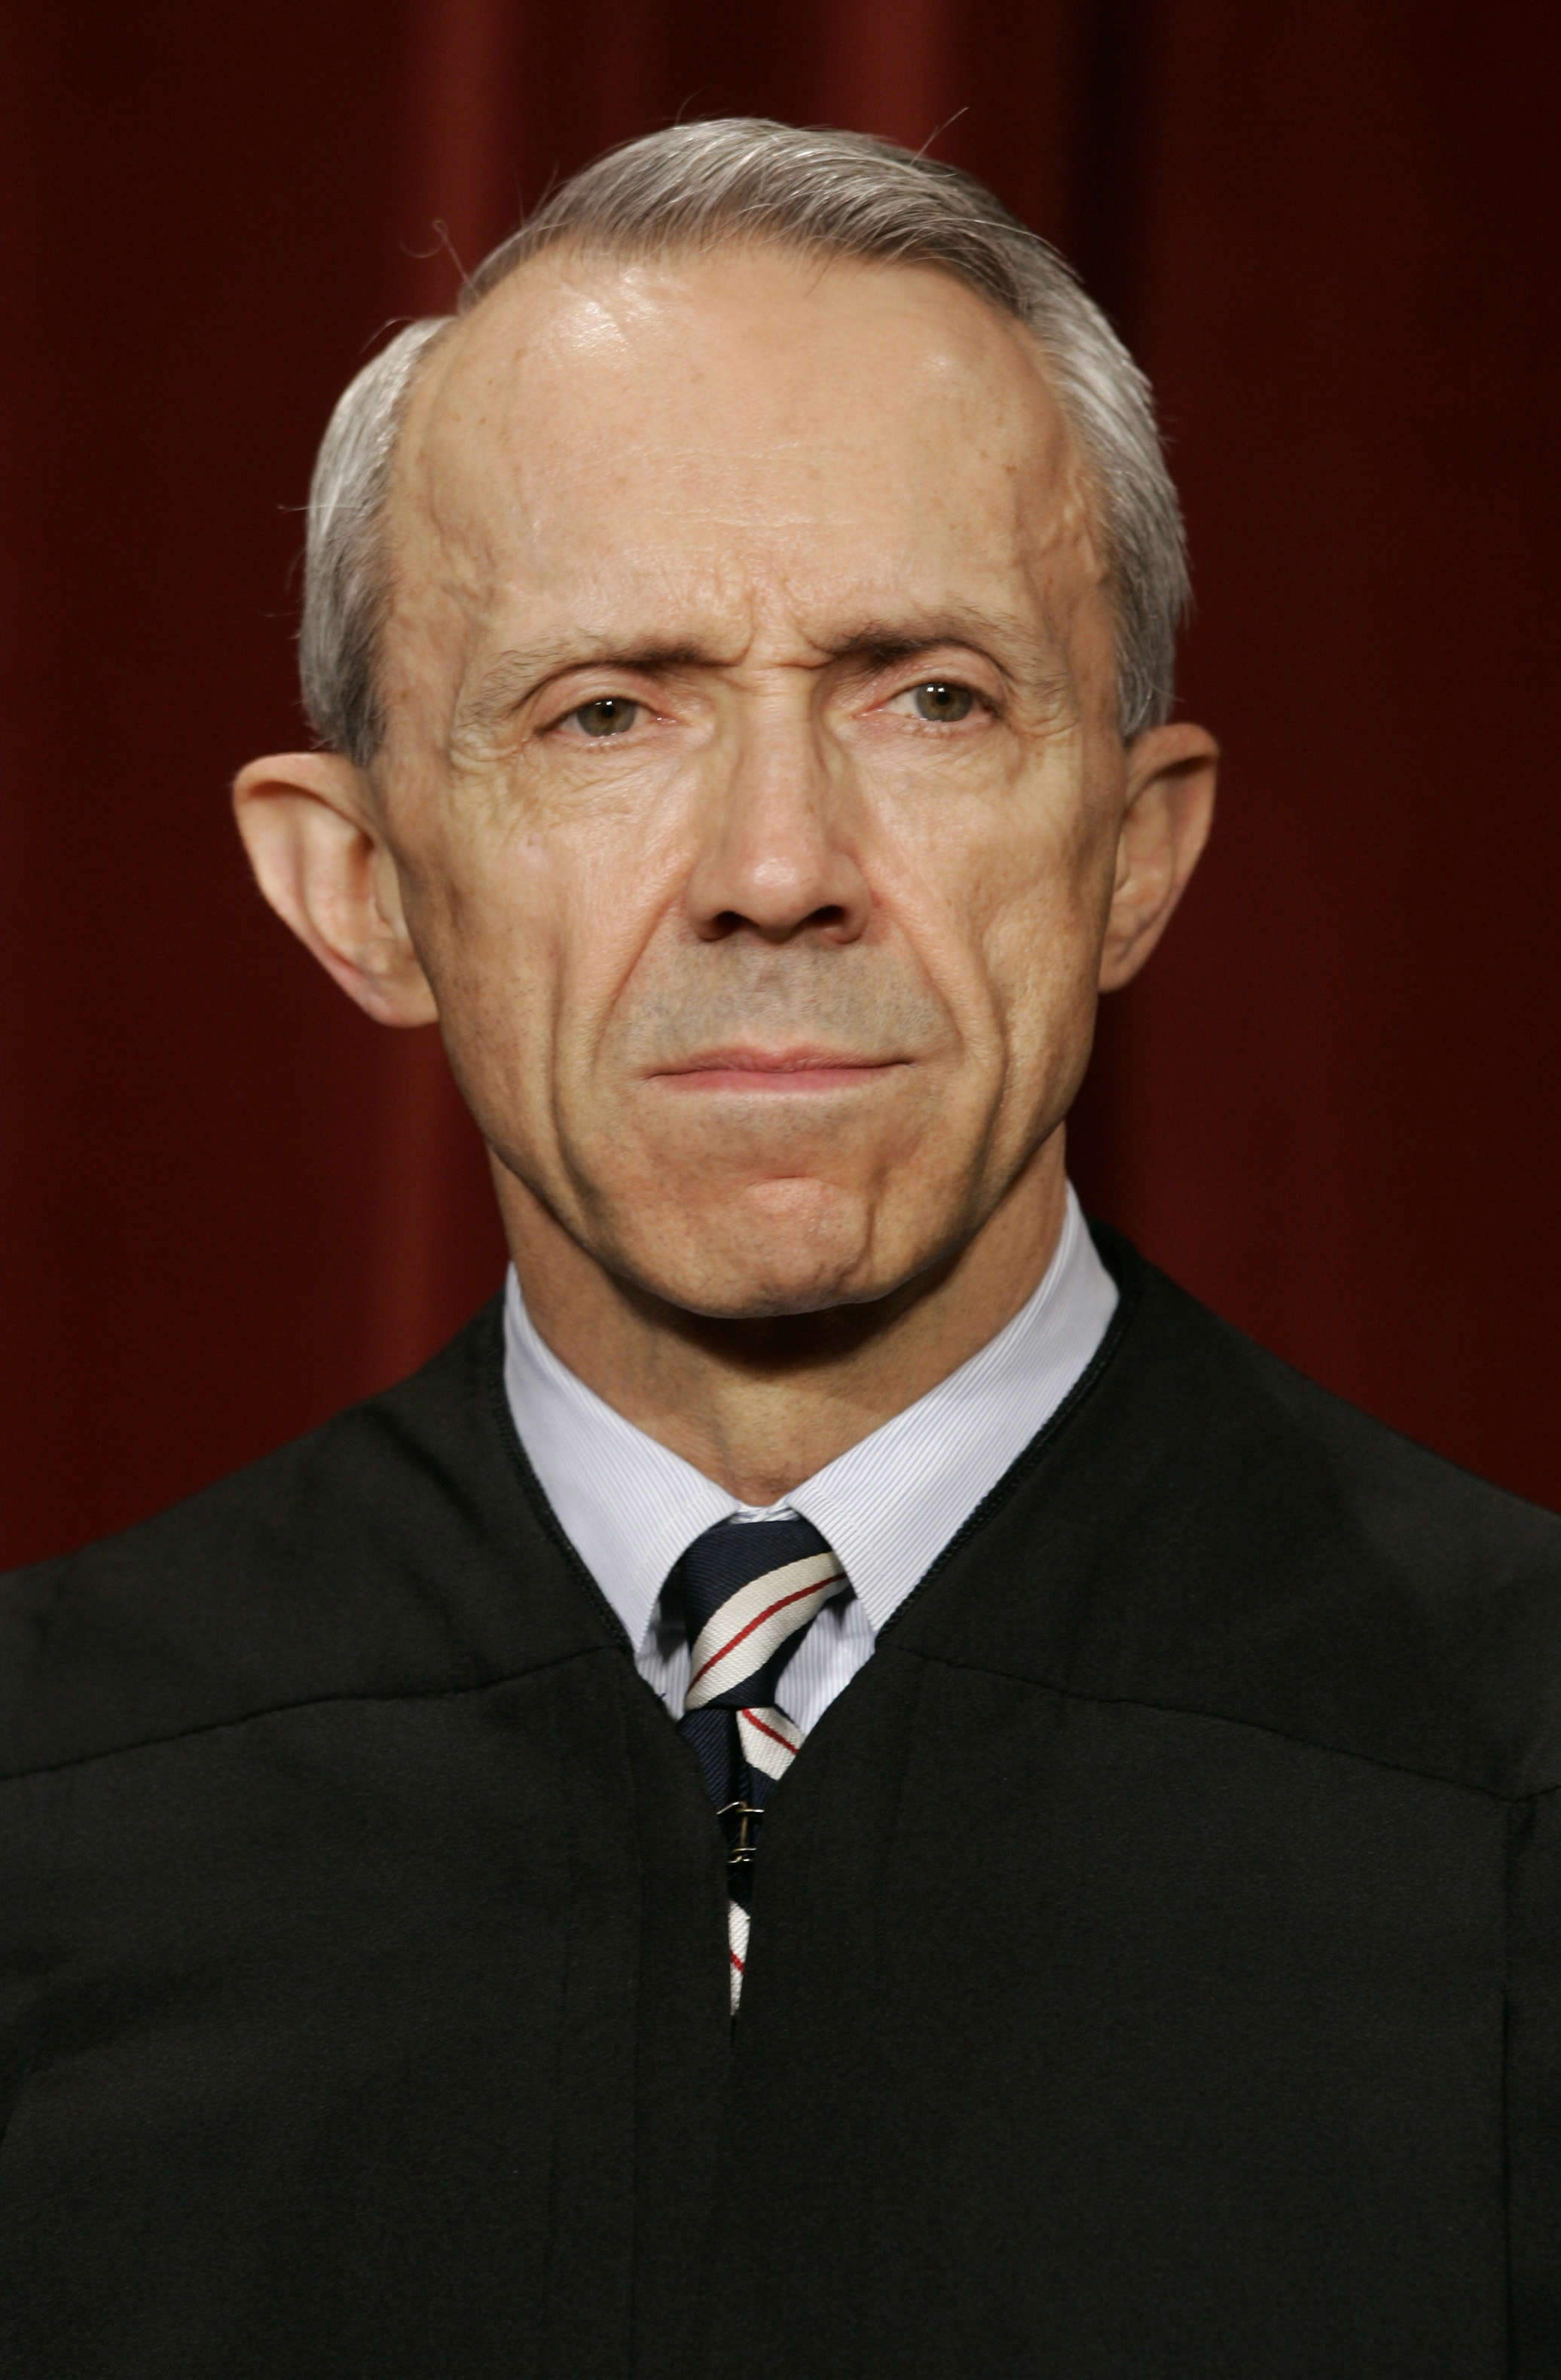 Justice David Souter poses for an official picture with other justices at the U.S. Supreme Court in Washington, October 31, 2005.